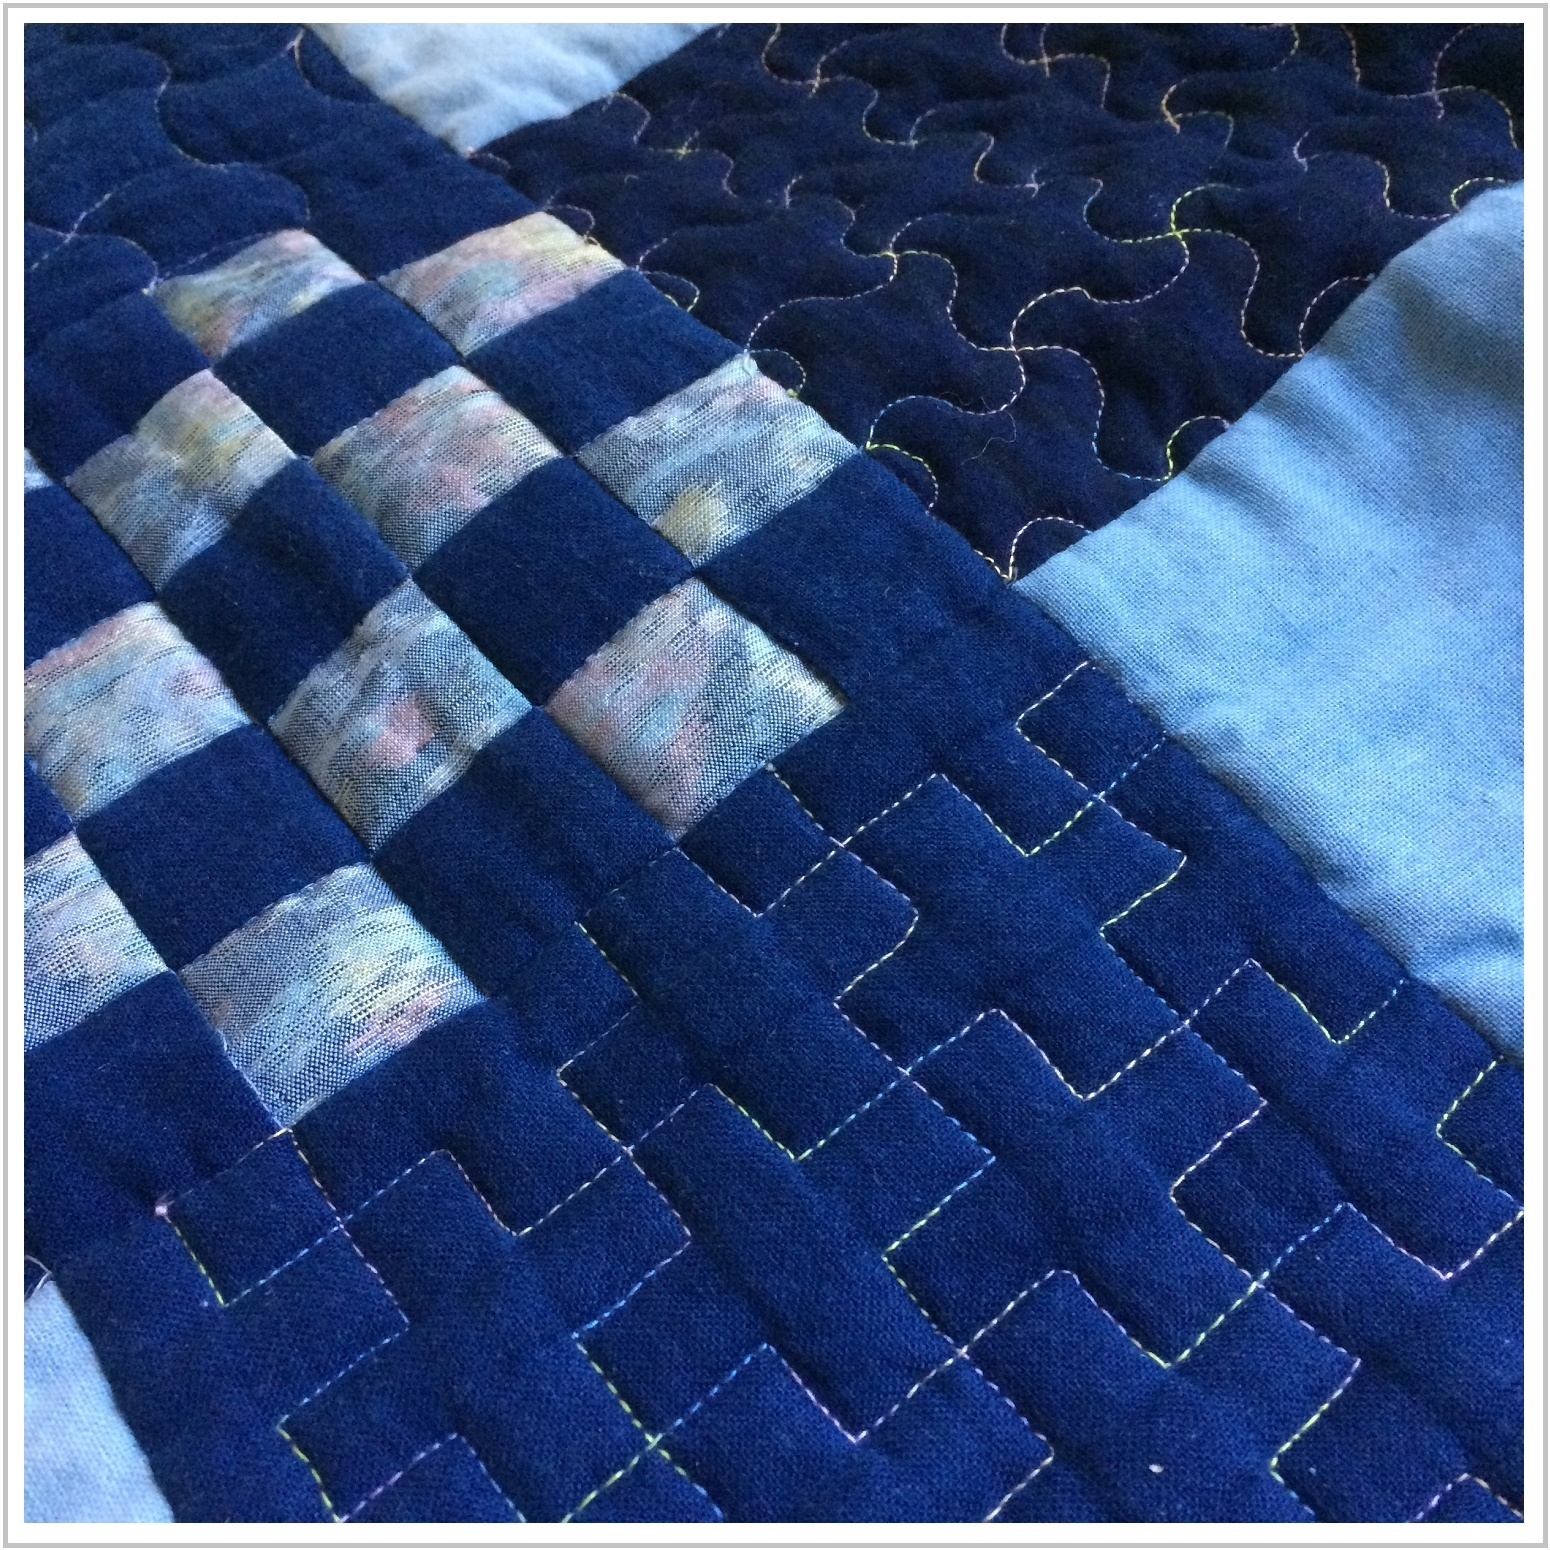 quilting_1_523.jpg